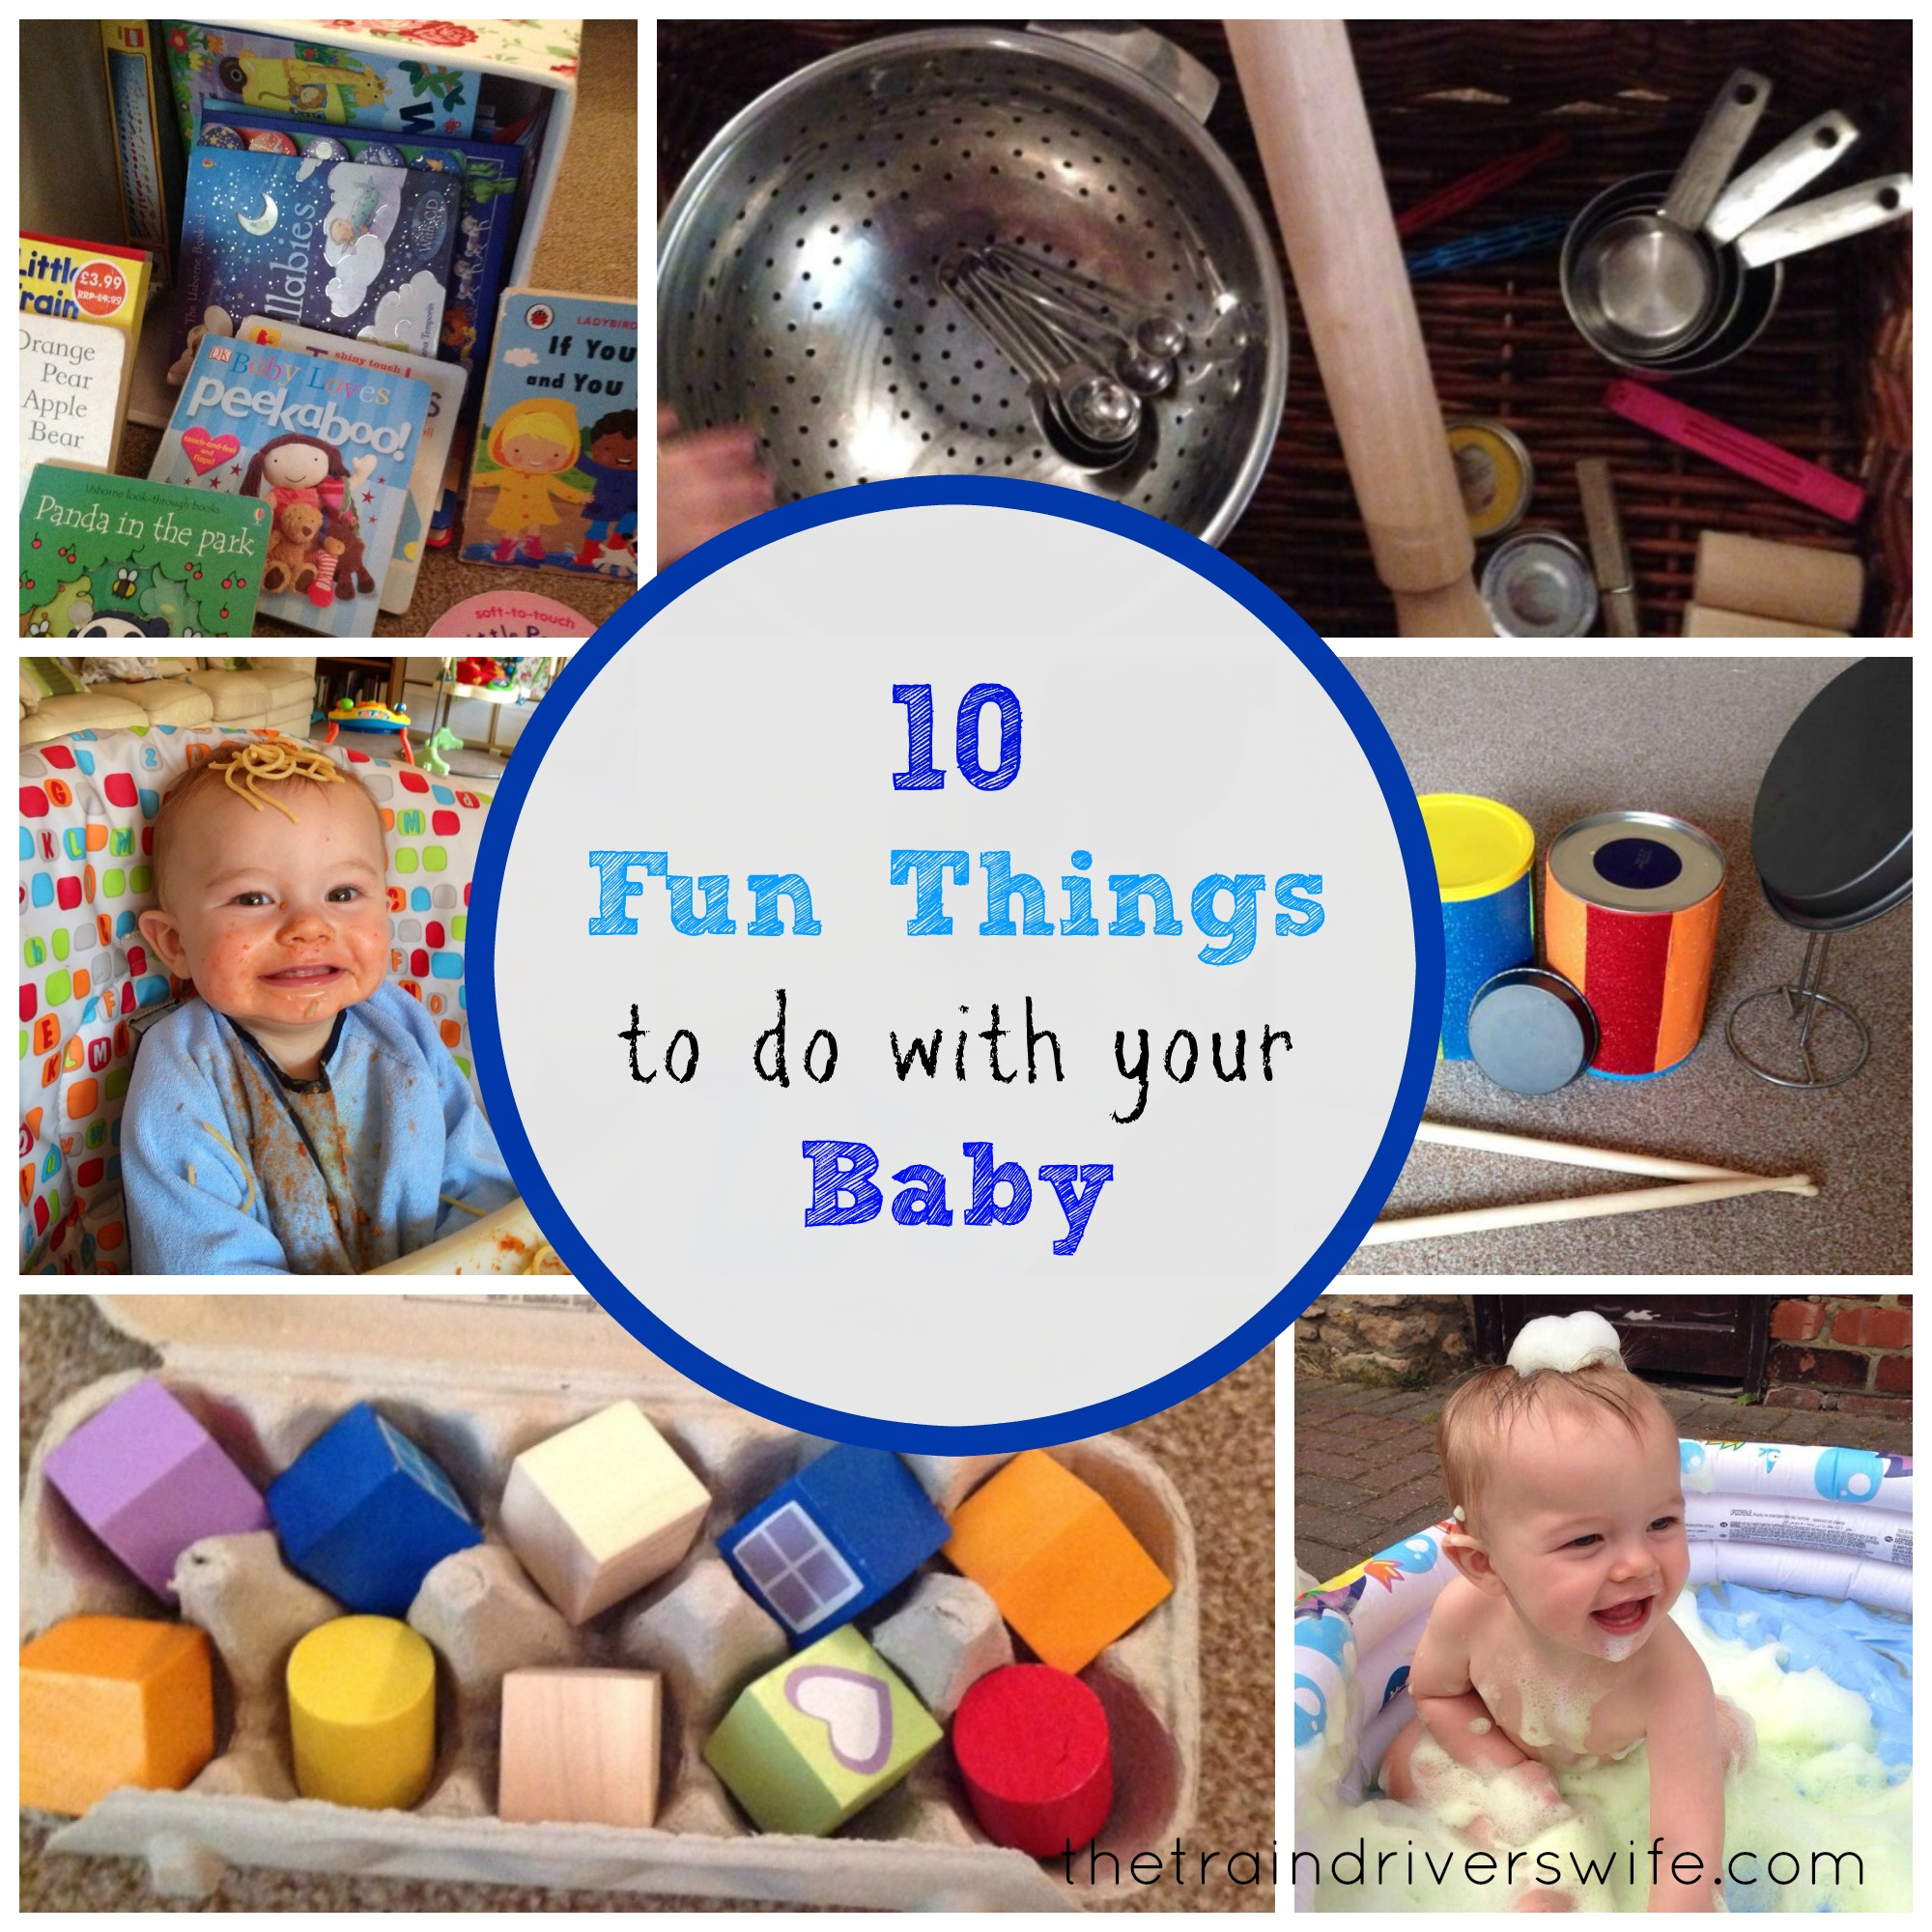 10 Fun Things to do with your 8-10 Month Old Baby